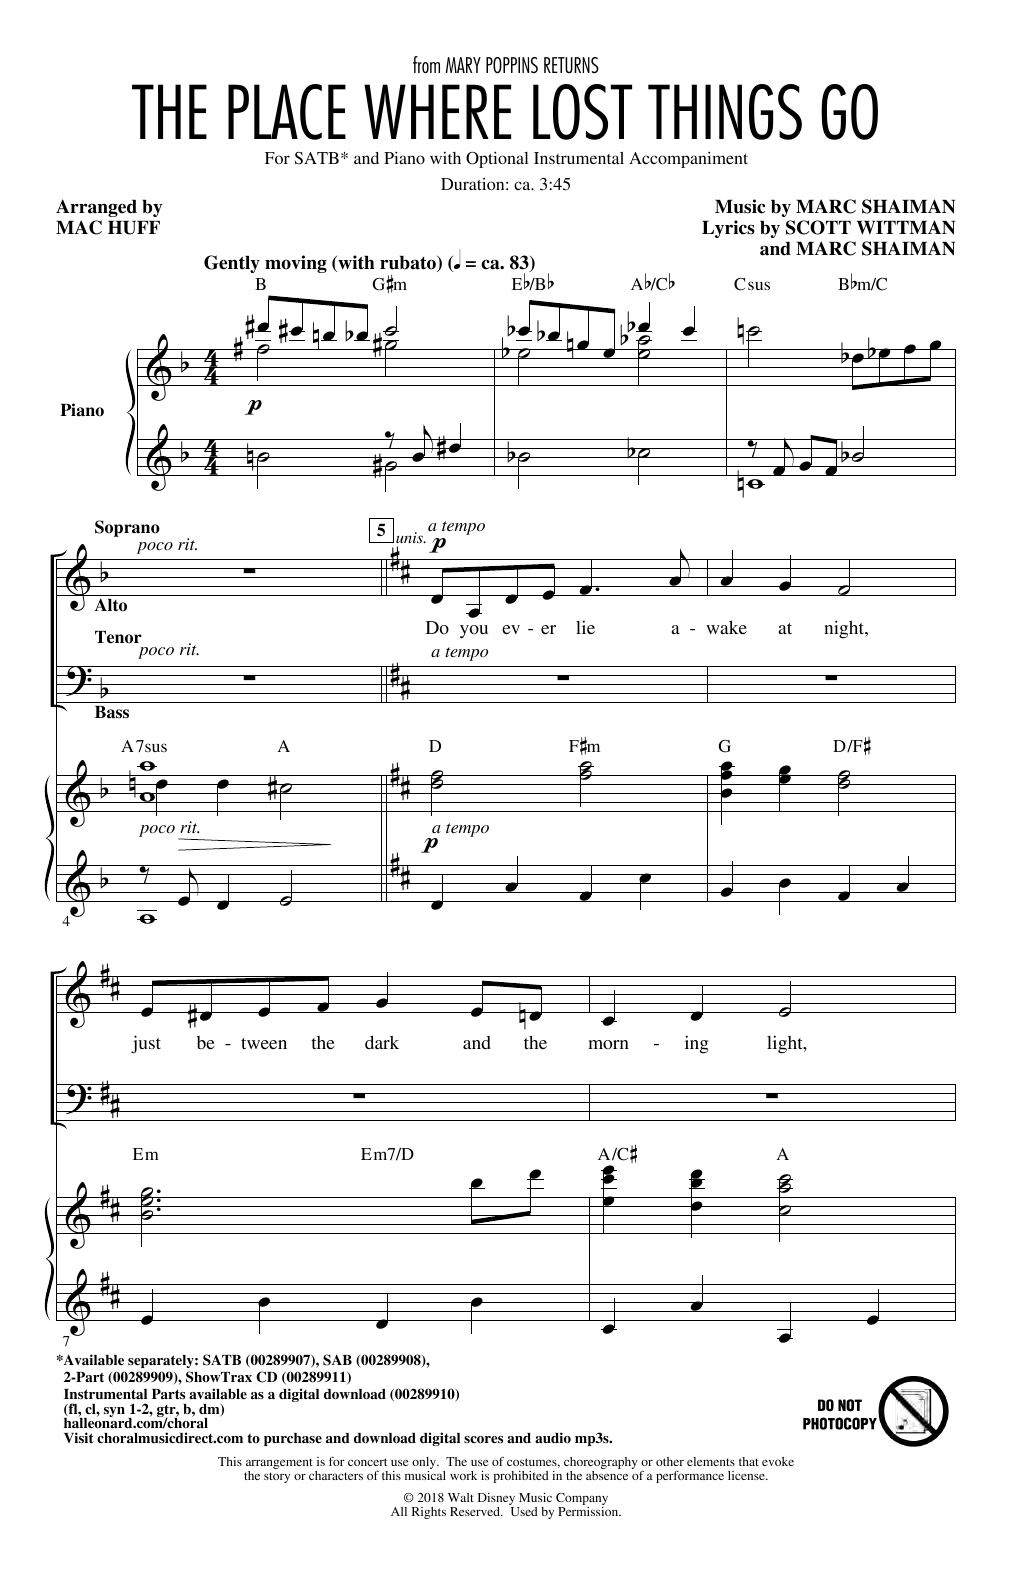 Emily Blunt The Place Where Lost Things Go (from Mary Poppins Returns) (arr. Mac Huff) sheet music notes and chords. Download Printable PDF.